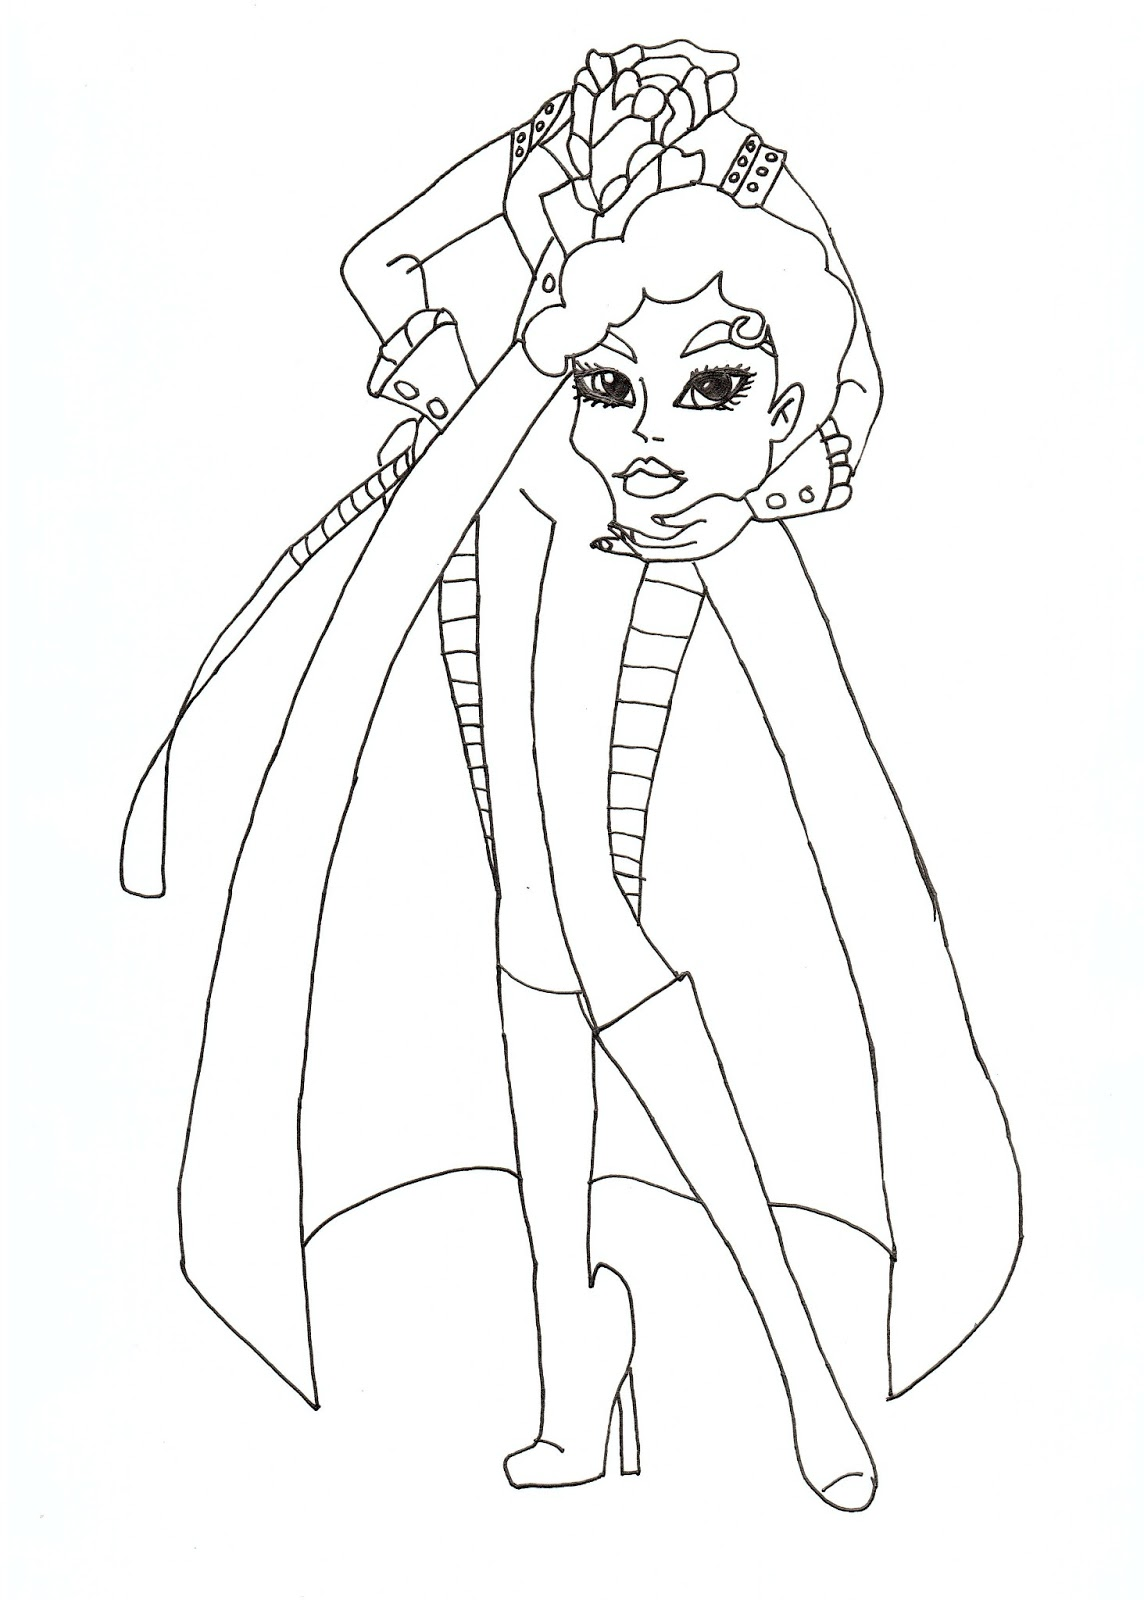 monster high gigi coloring pages - photo#29